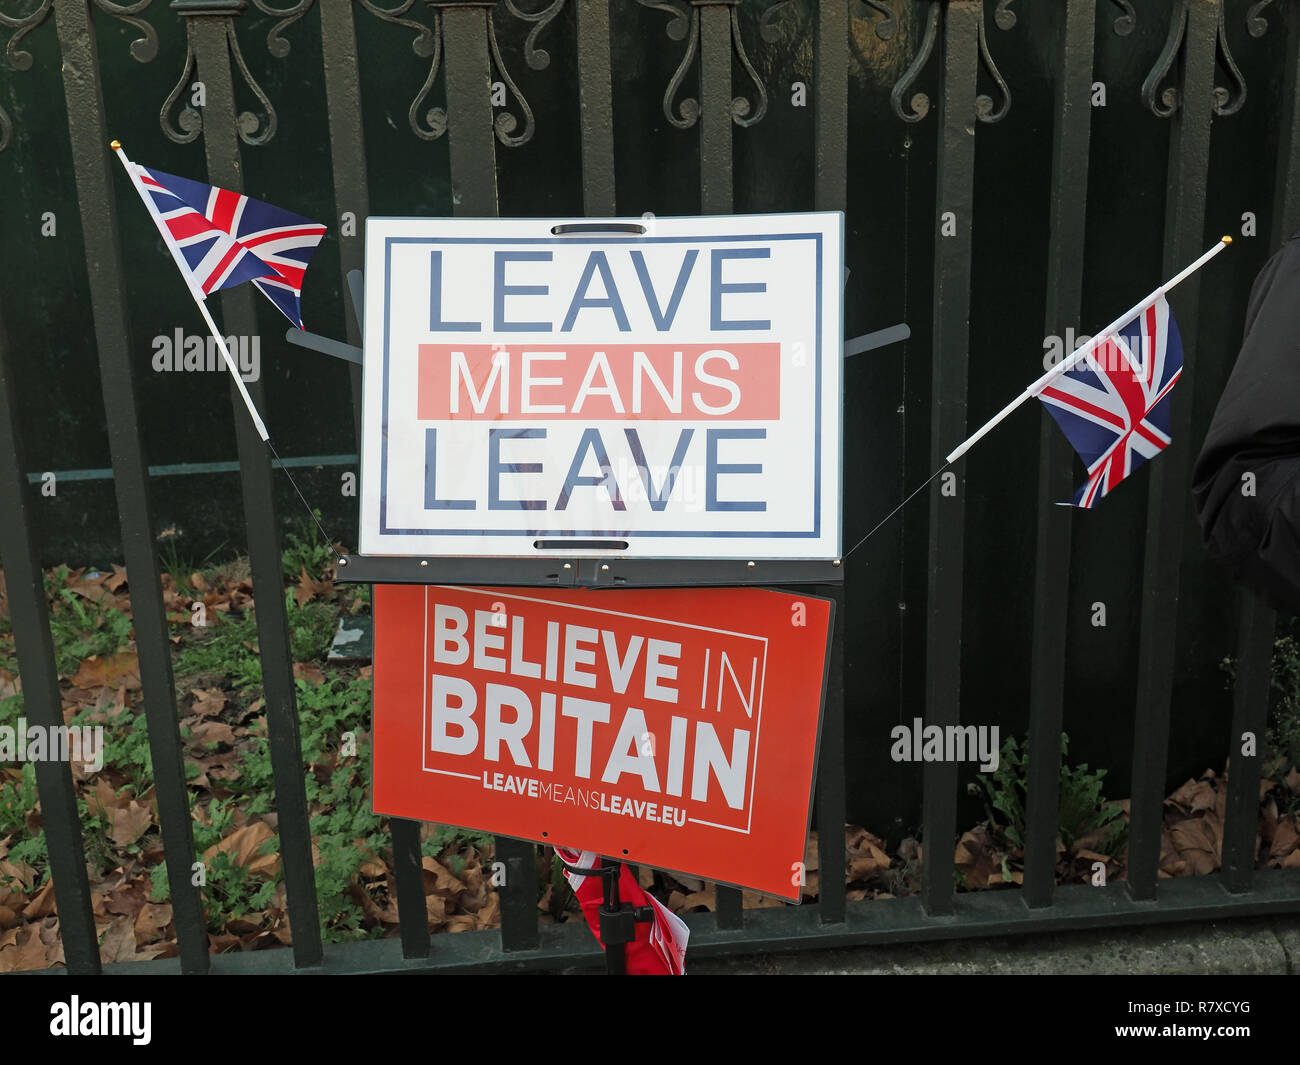 View of placards at a pro-Brexit demonstration with the slogan 'Leave means Leave' - Stock Image